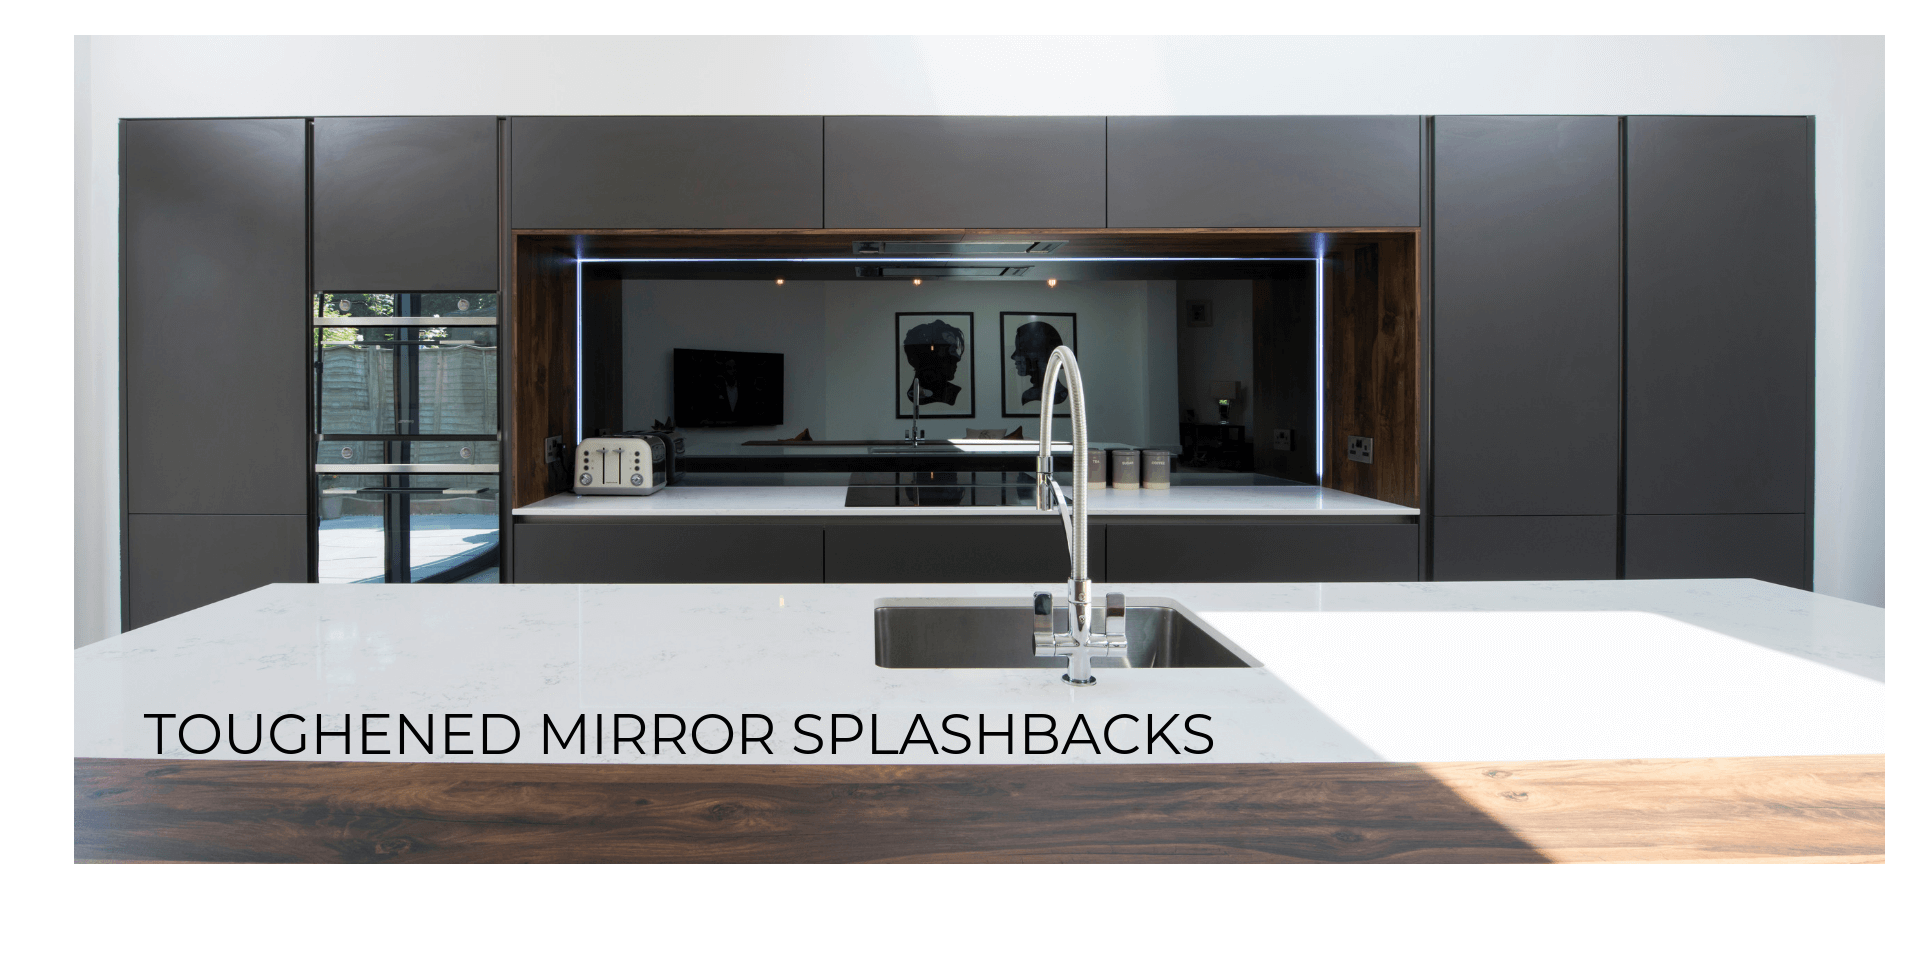 Mirror Splashbacks for Kitchens